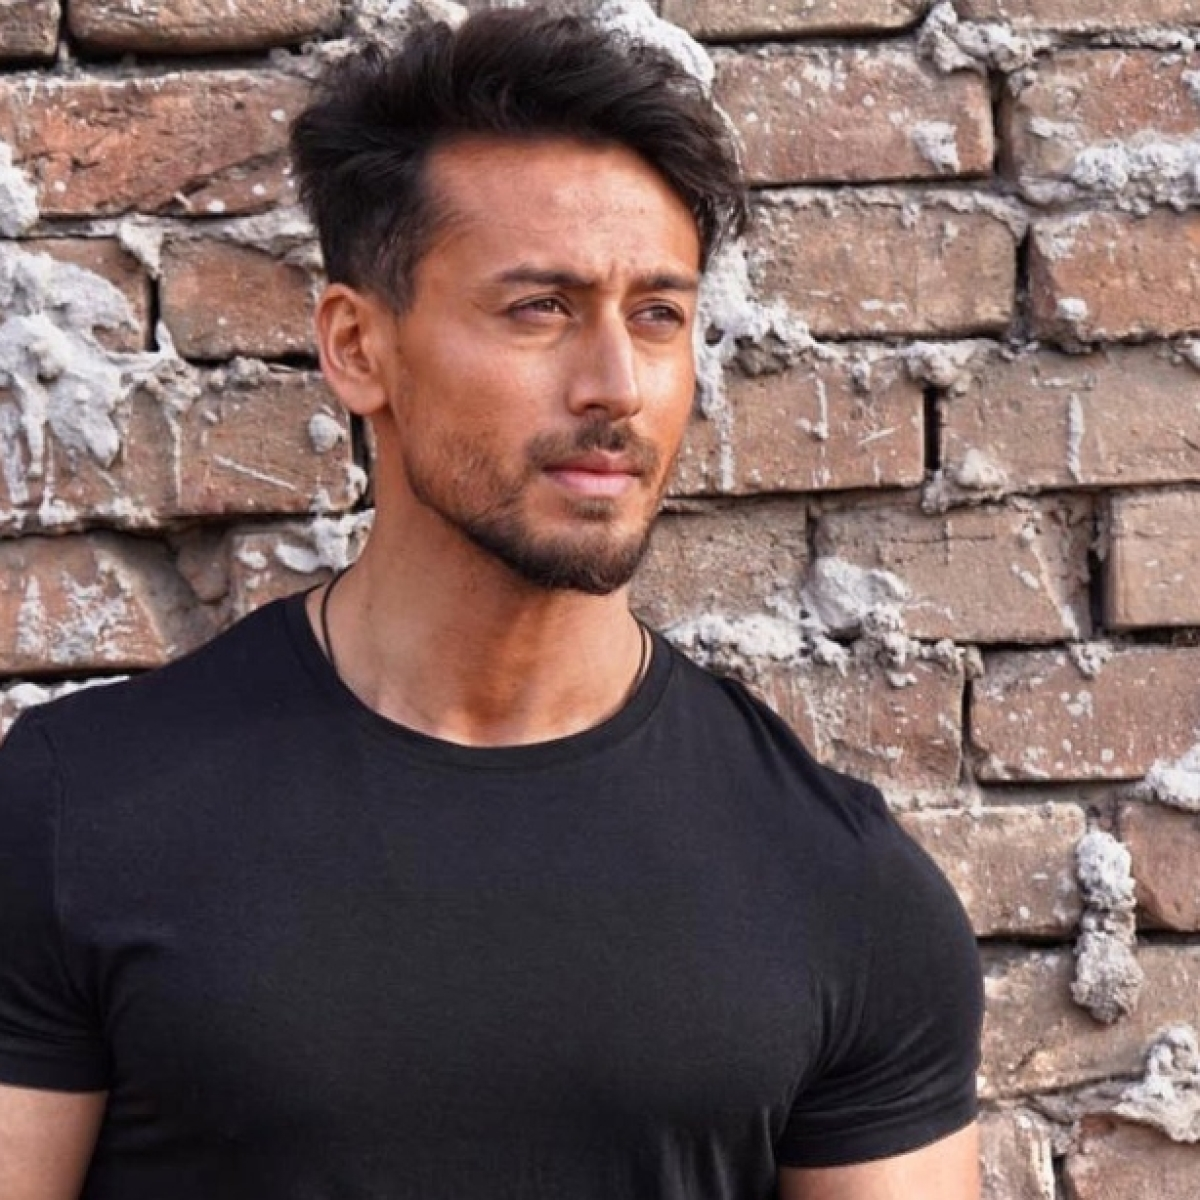 Tiger Shroff flaunts gymnastics skills in 'old training footage', says 'I remember puking after every session'